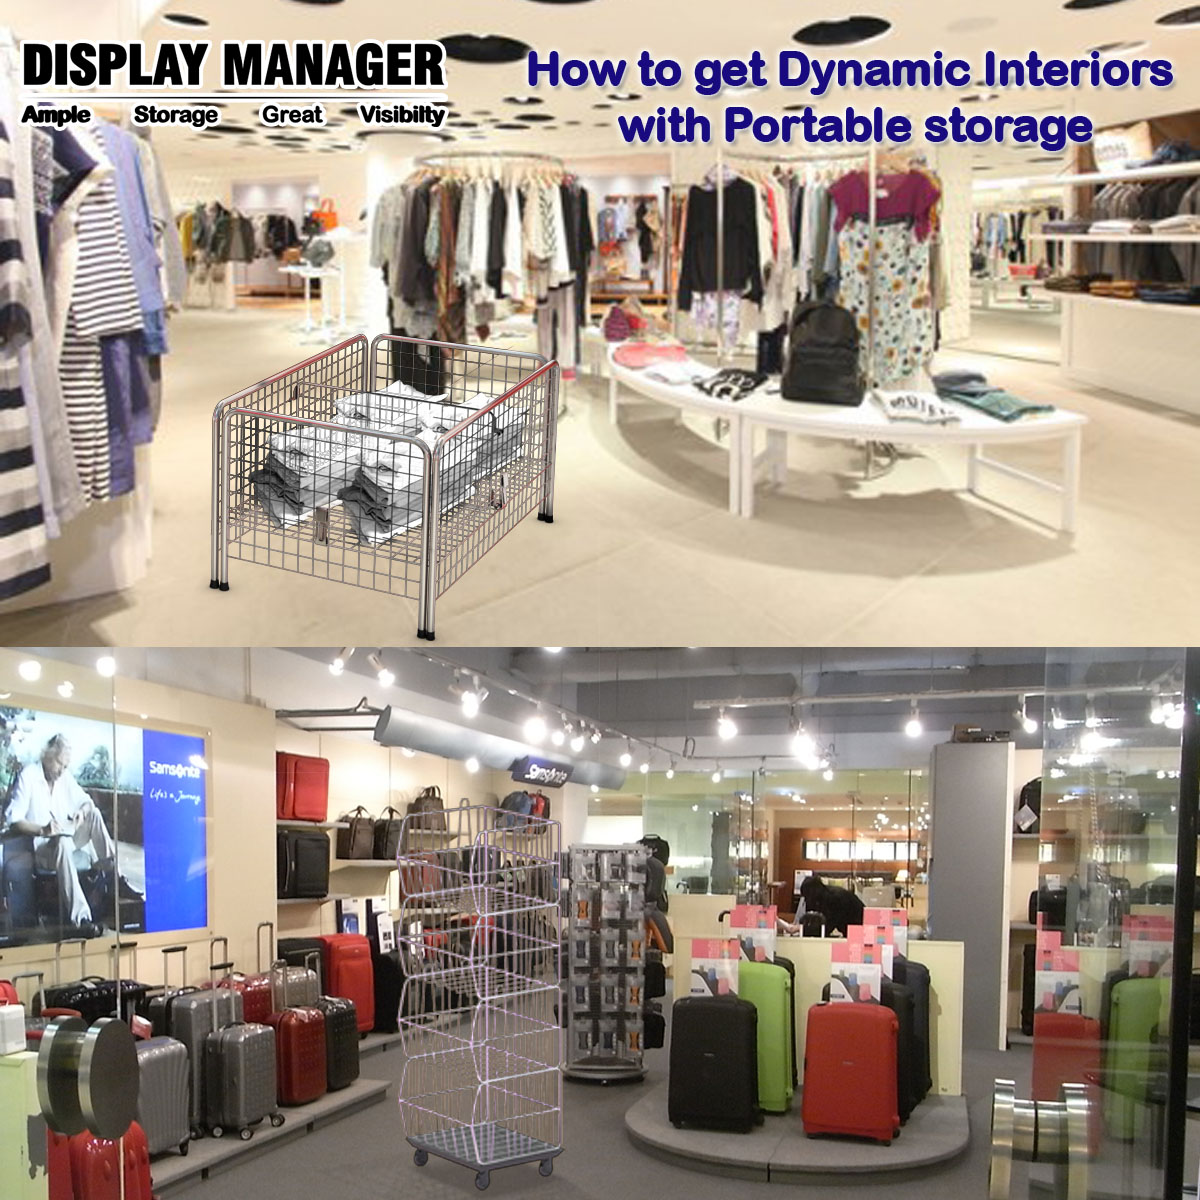 How to get Dynamic Interiors with Portable storage